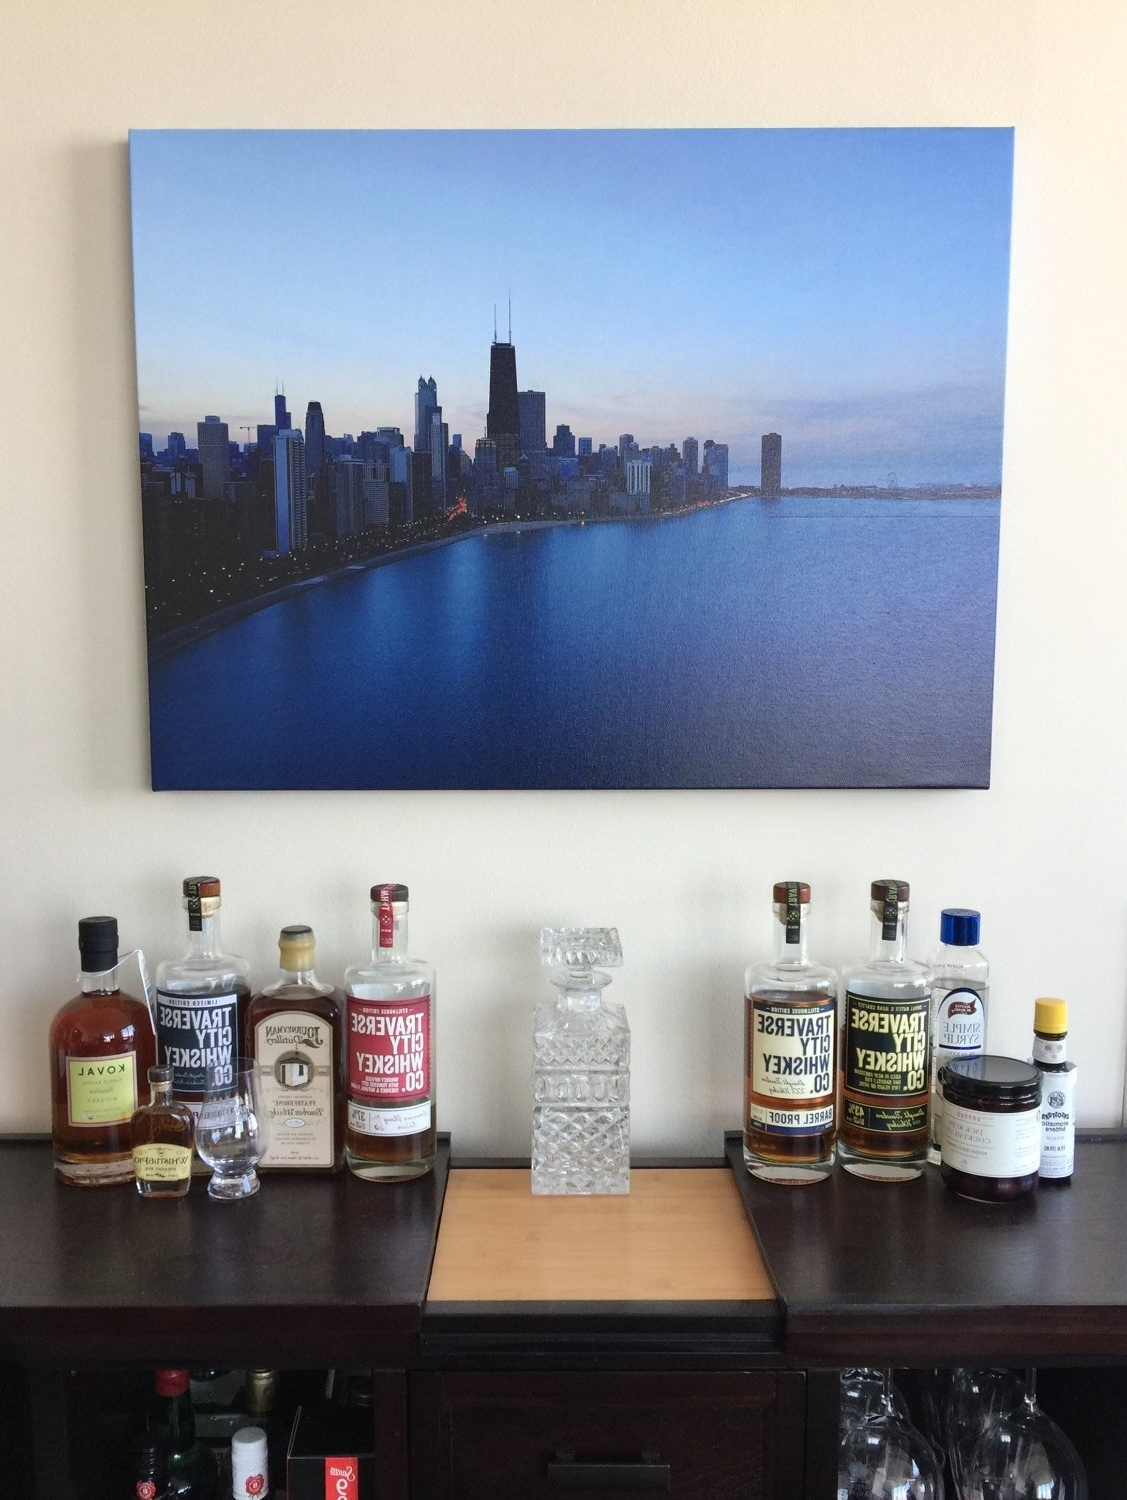 Recent Chicago Wall Art For Sunsets In Chicago – Office And Wall Art, Urban Art, Chicago Art (View 13 of 15)